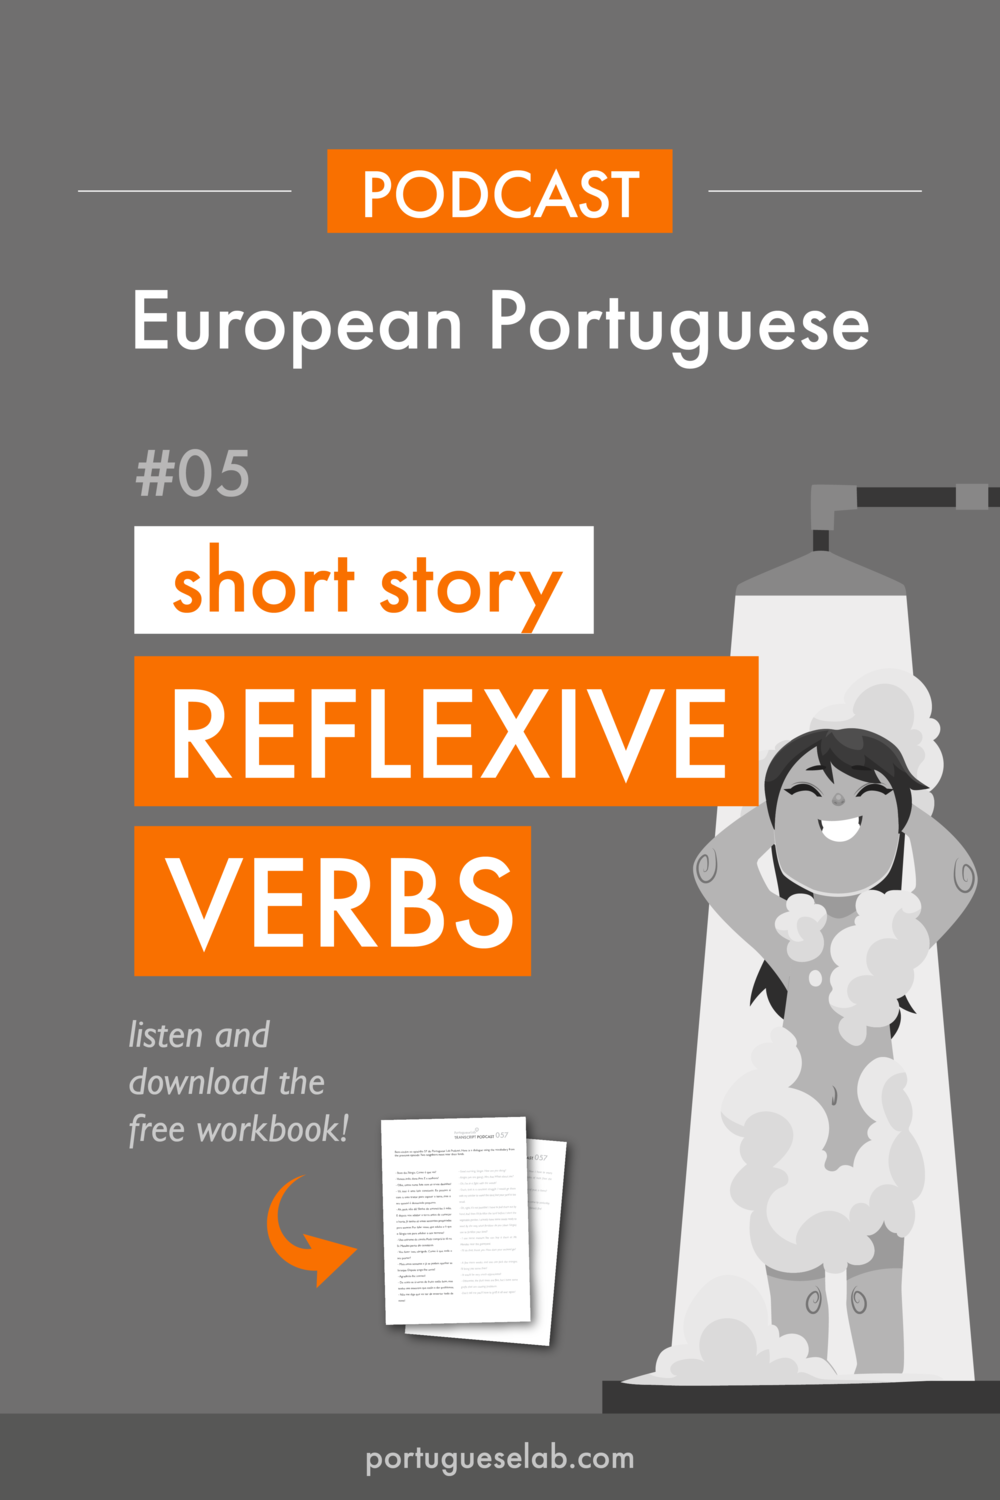 Portuguese Lab Podcast - European Portuguese - 05 - Short story - reflexive verbs.png